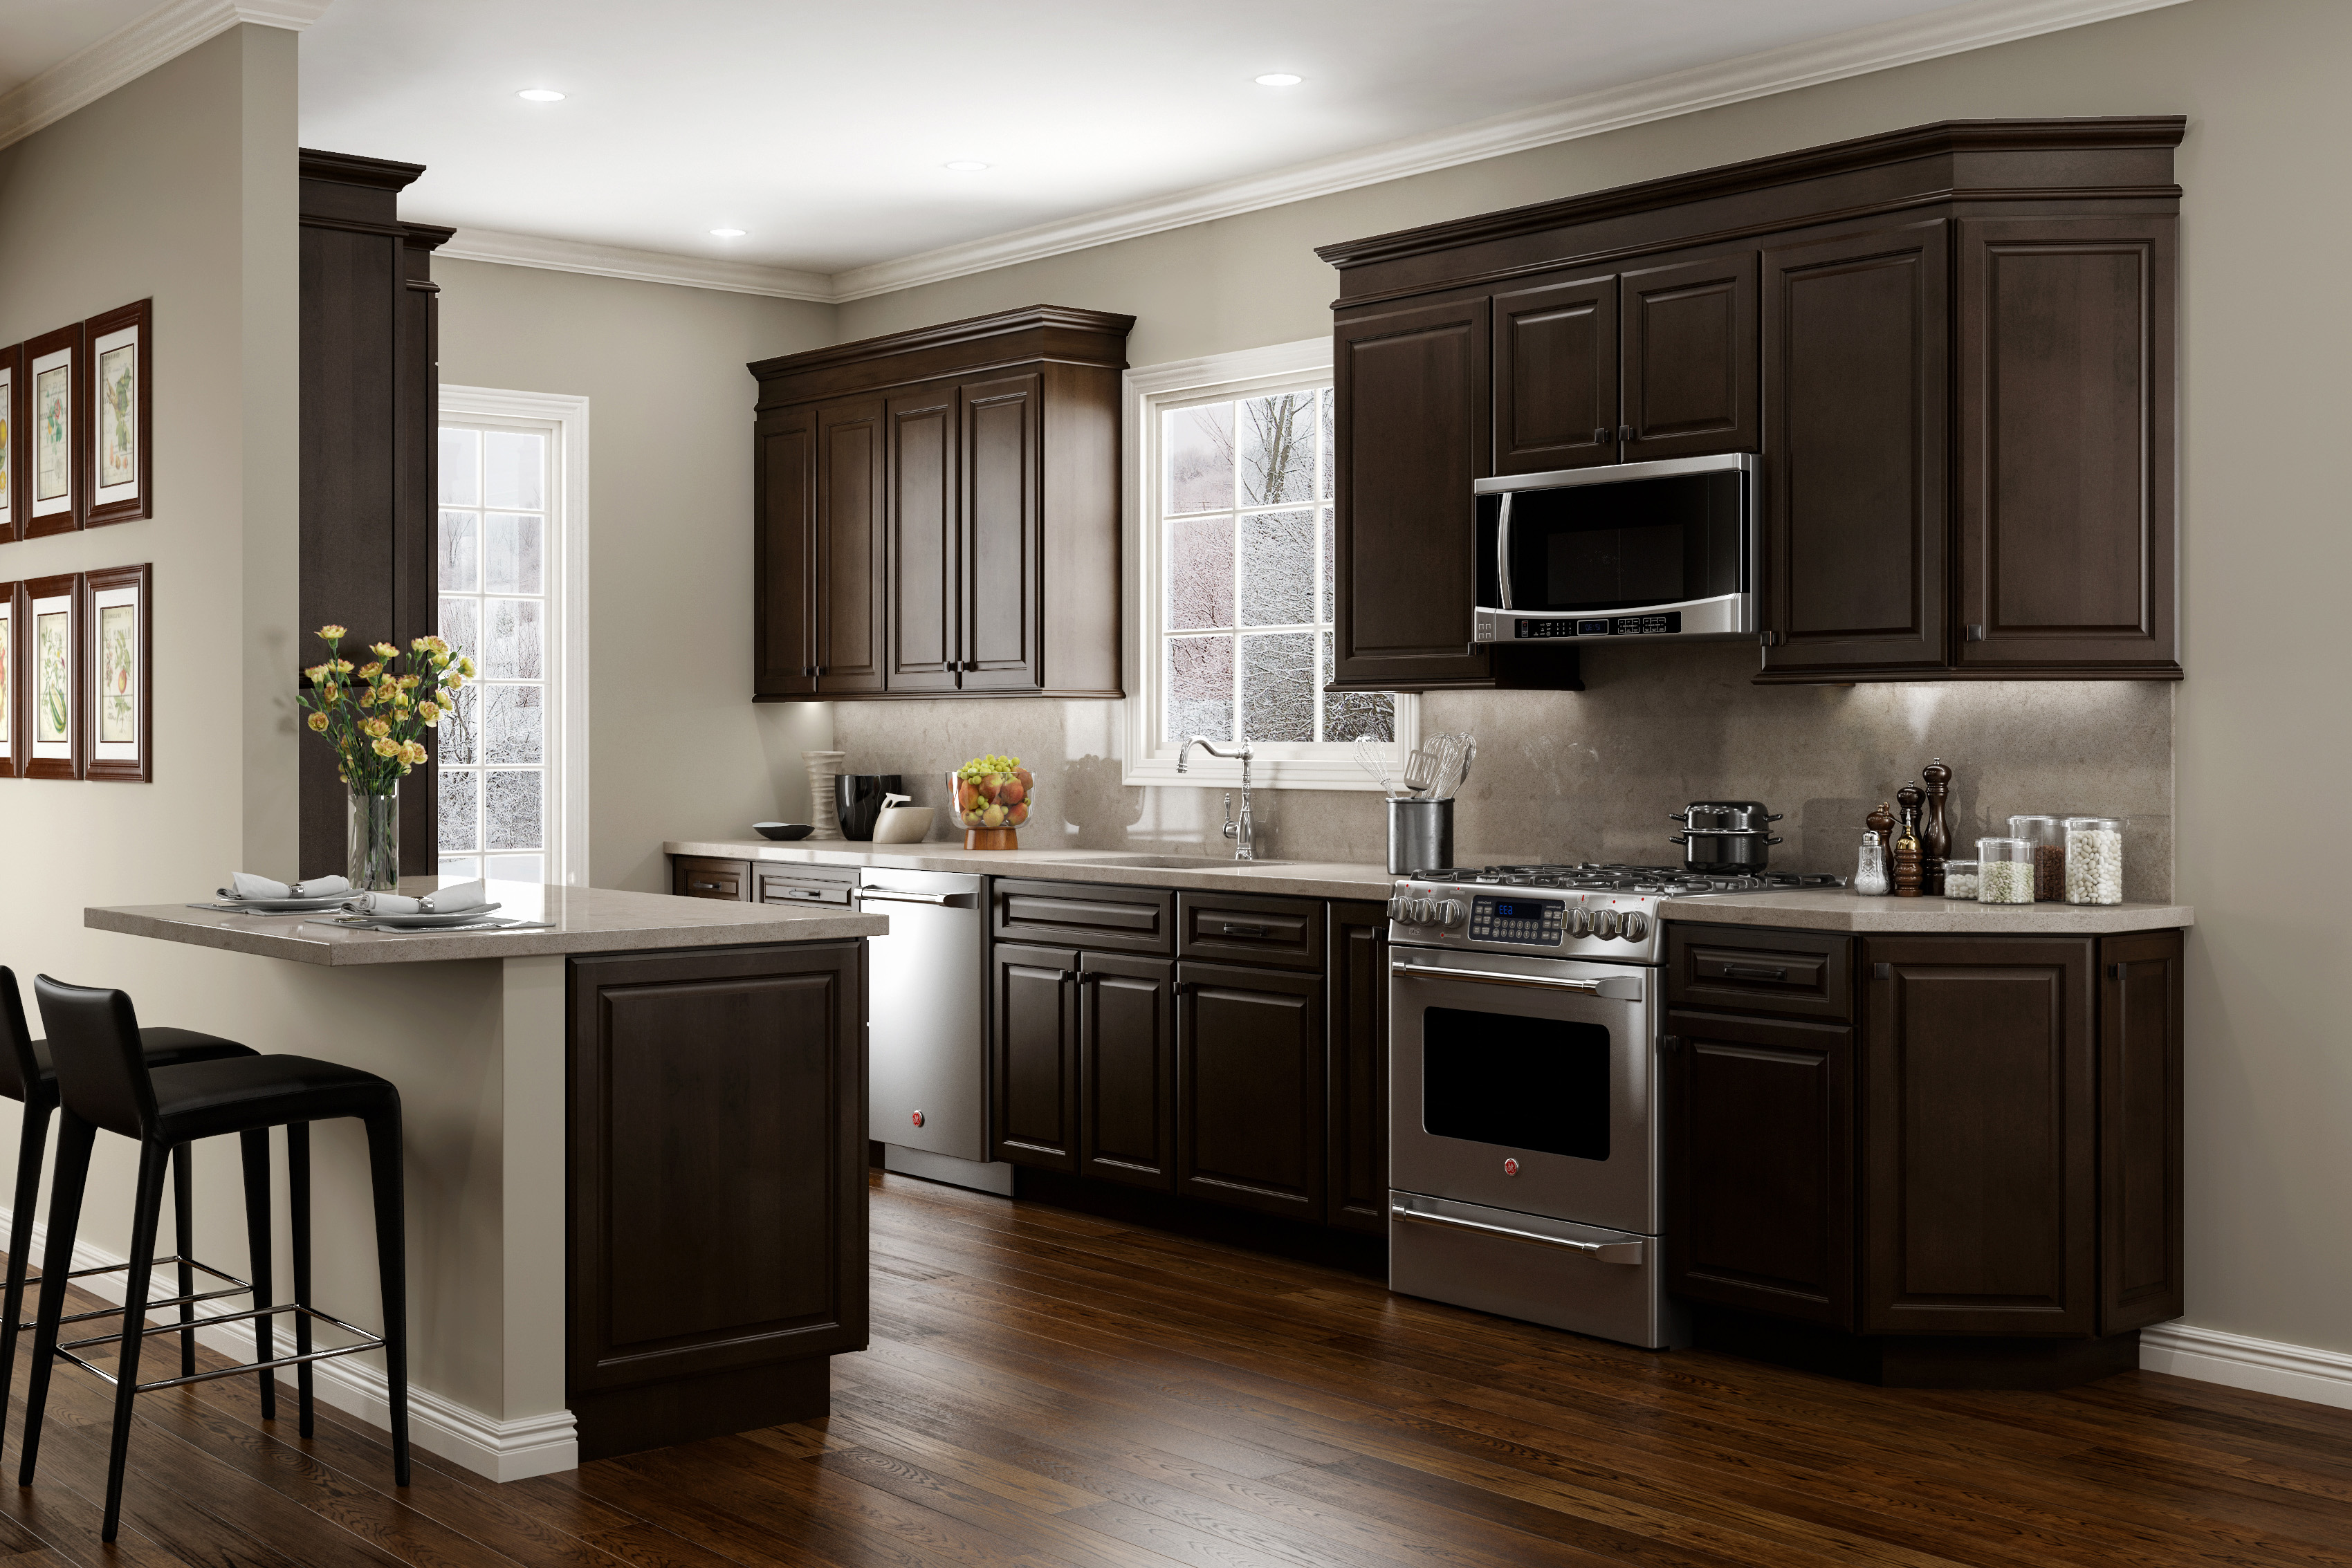 Espresso Kitchen Cabinets With White Countertops